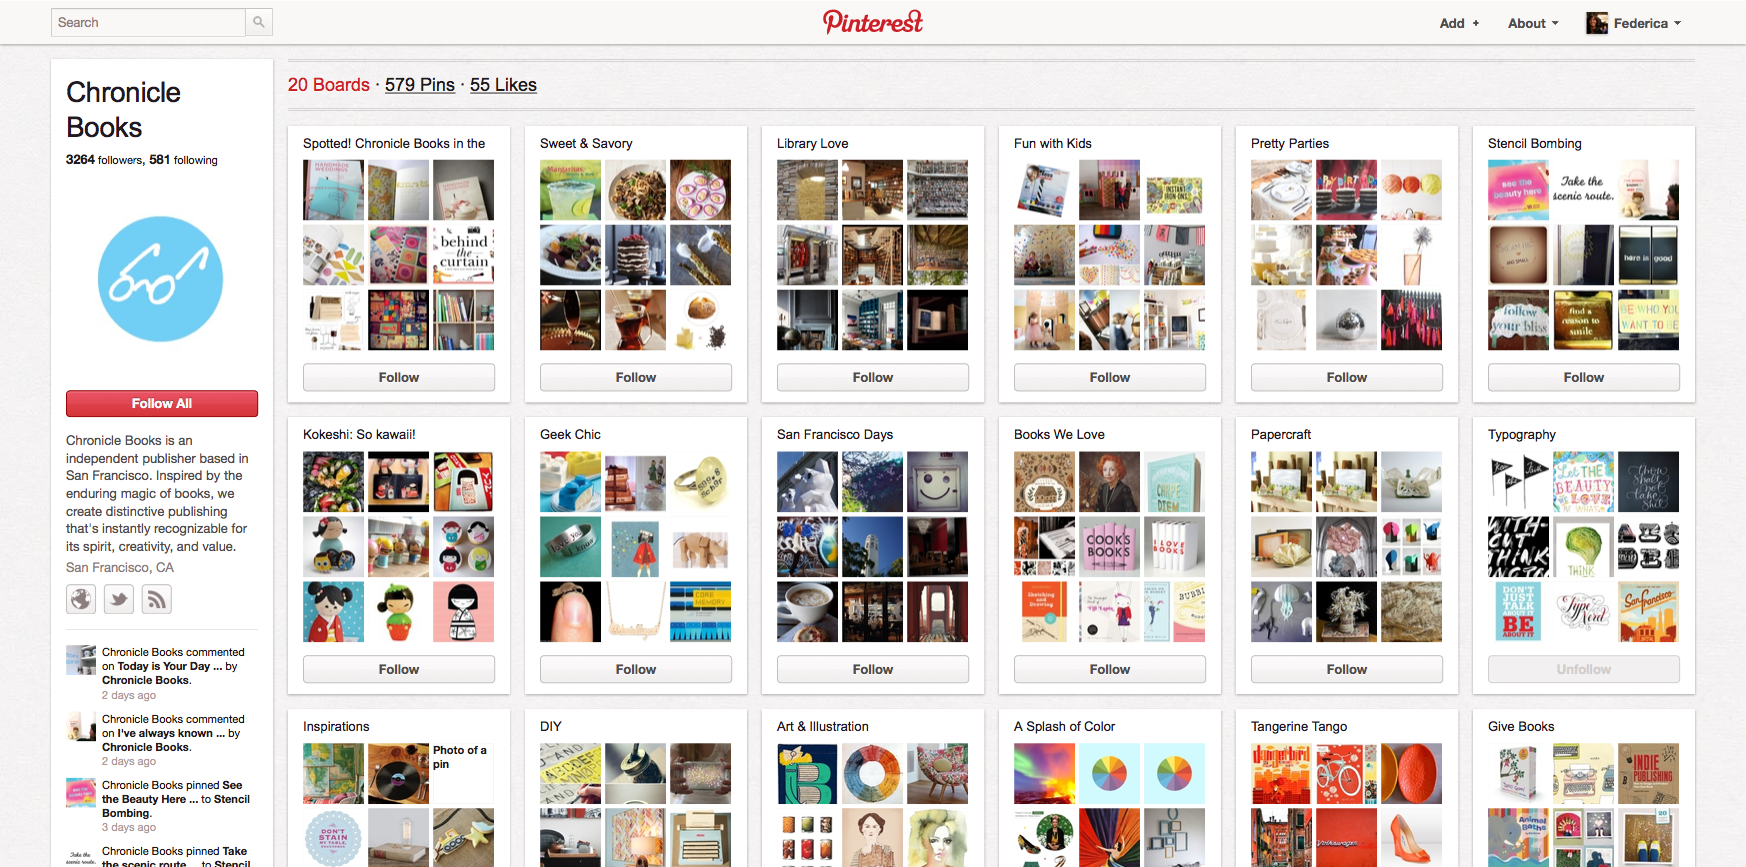 Chronicle Books su Pinterest http://pinterest.com/chroniclebooks/